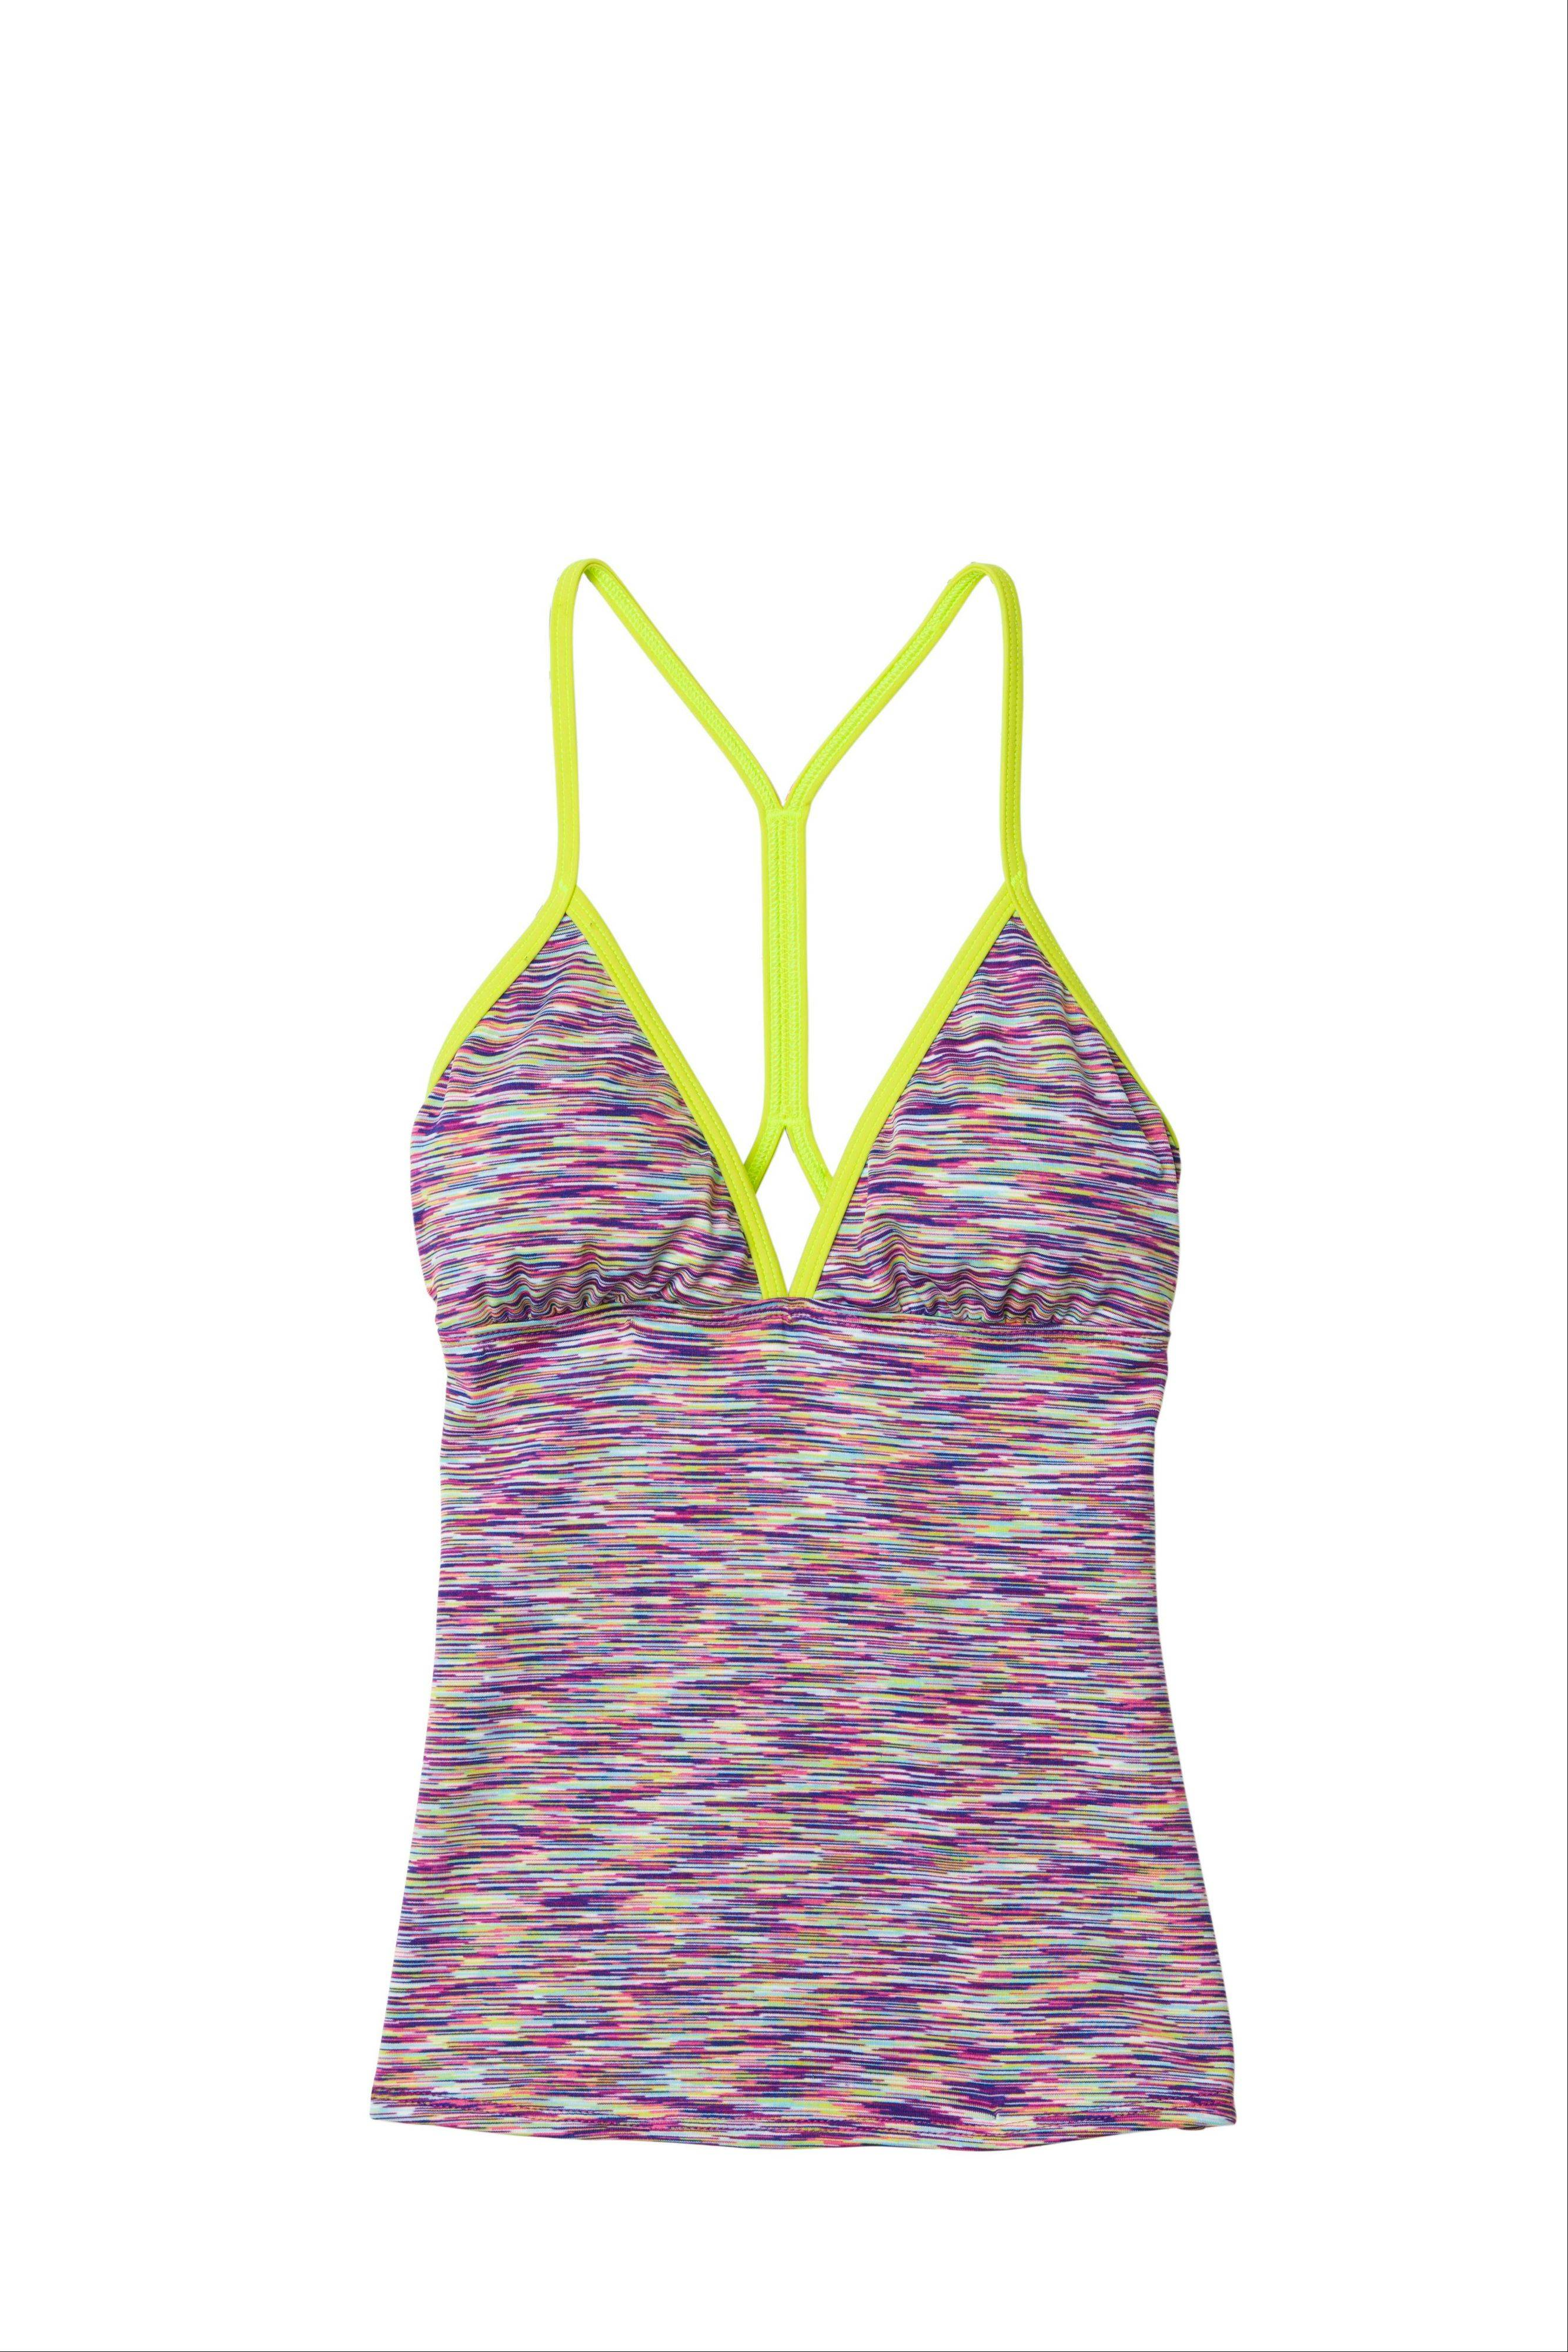 Swim separates, including bikini and tankini tops, and brief, bikini and short-style bottoms, were introduced into wide distribution several years ago. They were intended to solve a practical problem when consumers needed a bigger top or bigger bottom, but women have since started using them to make a style statement.